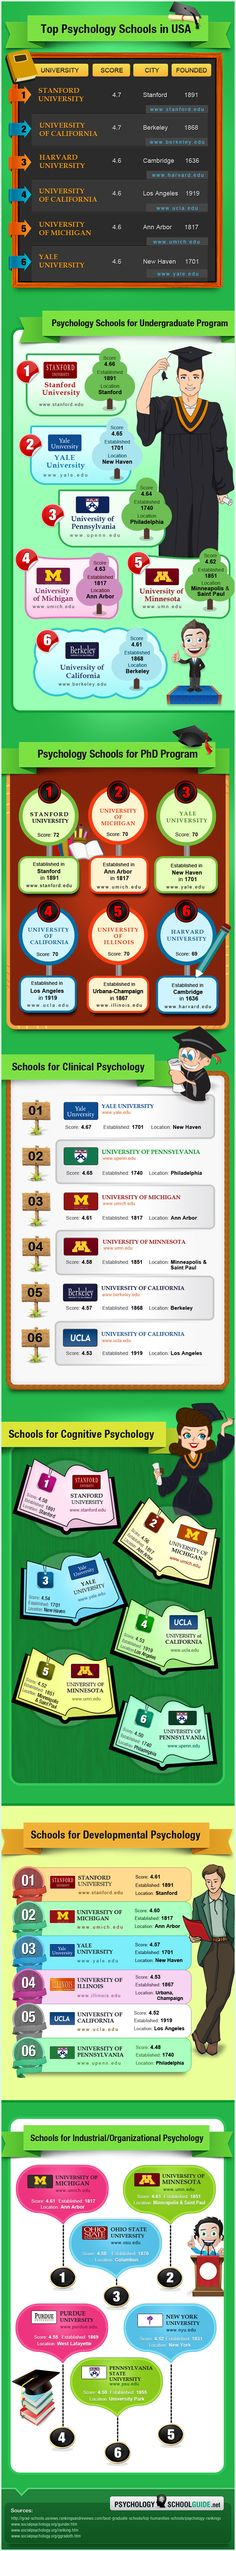 top-psychology-colleges-and-schools-in-the-usa-infographic